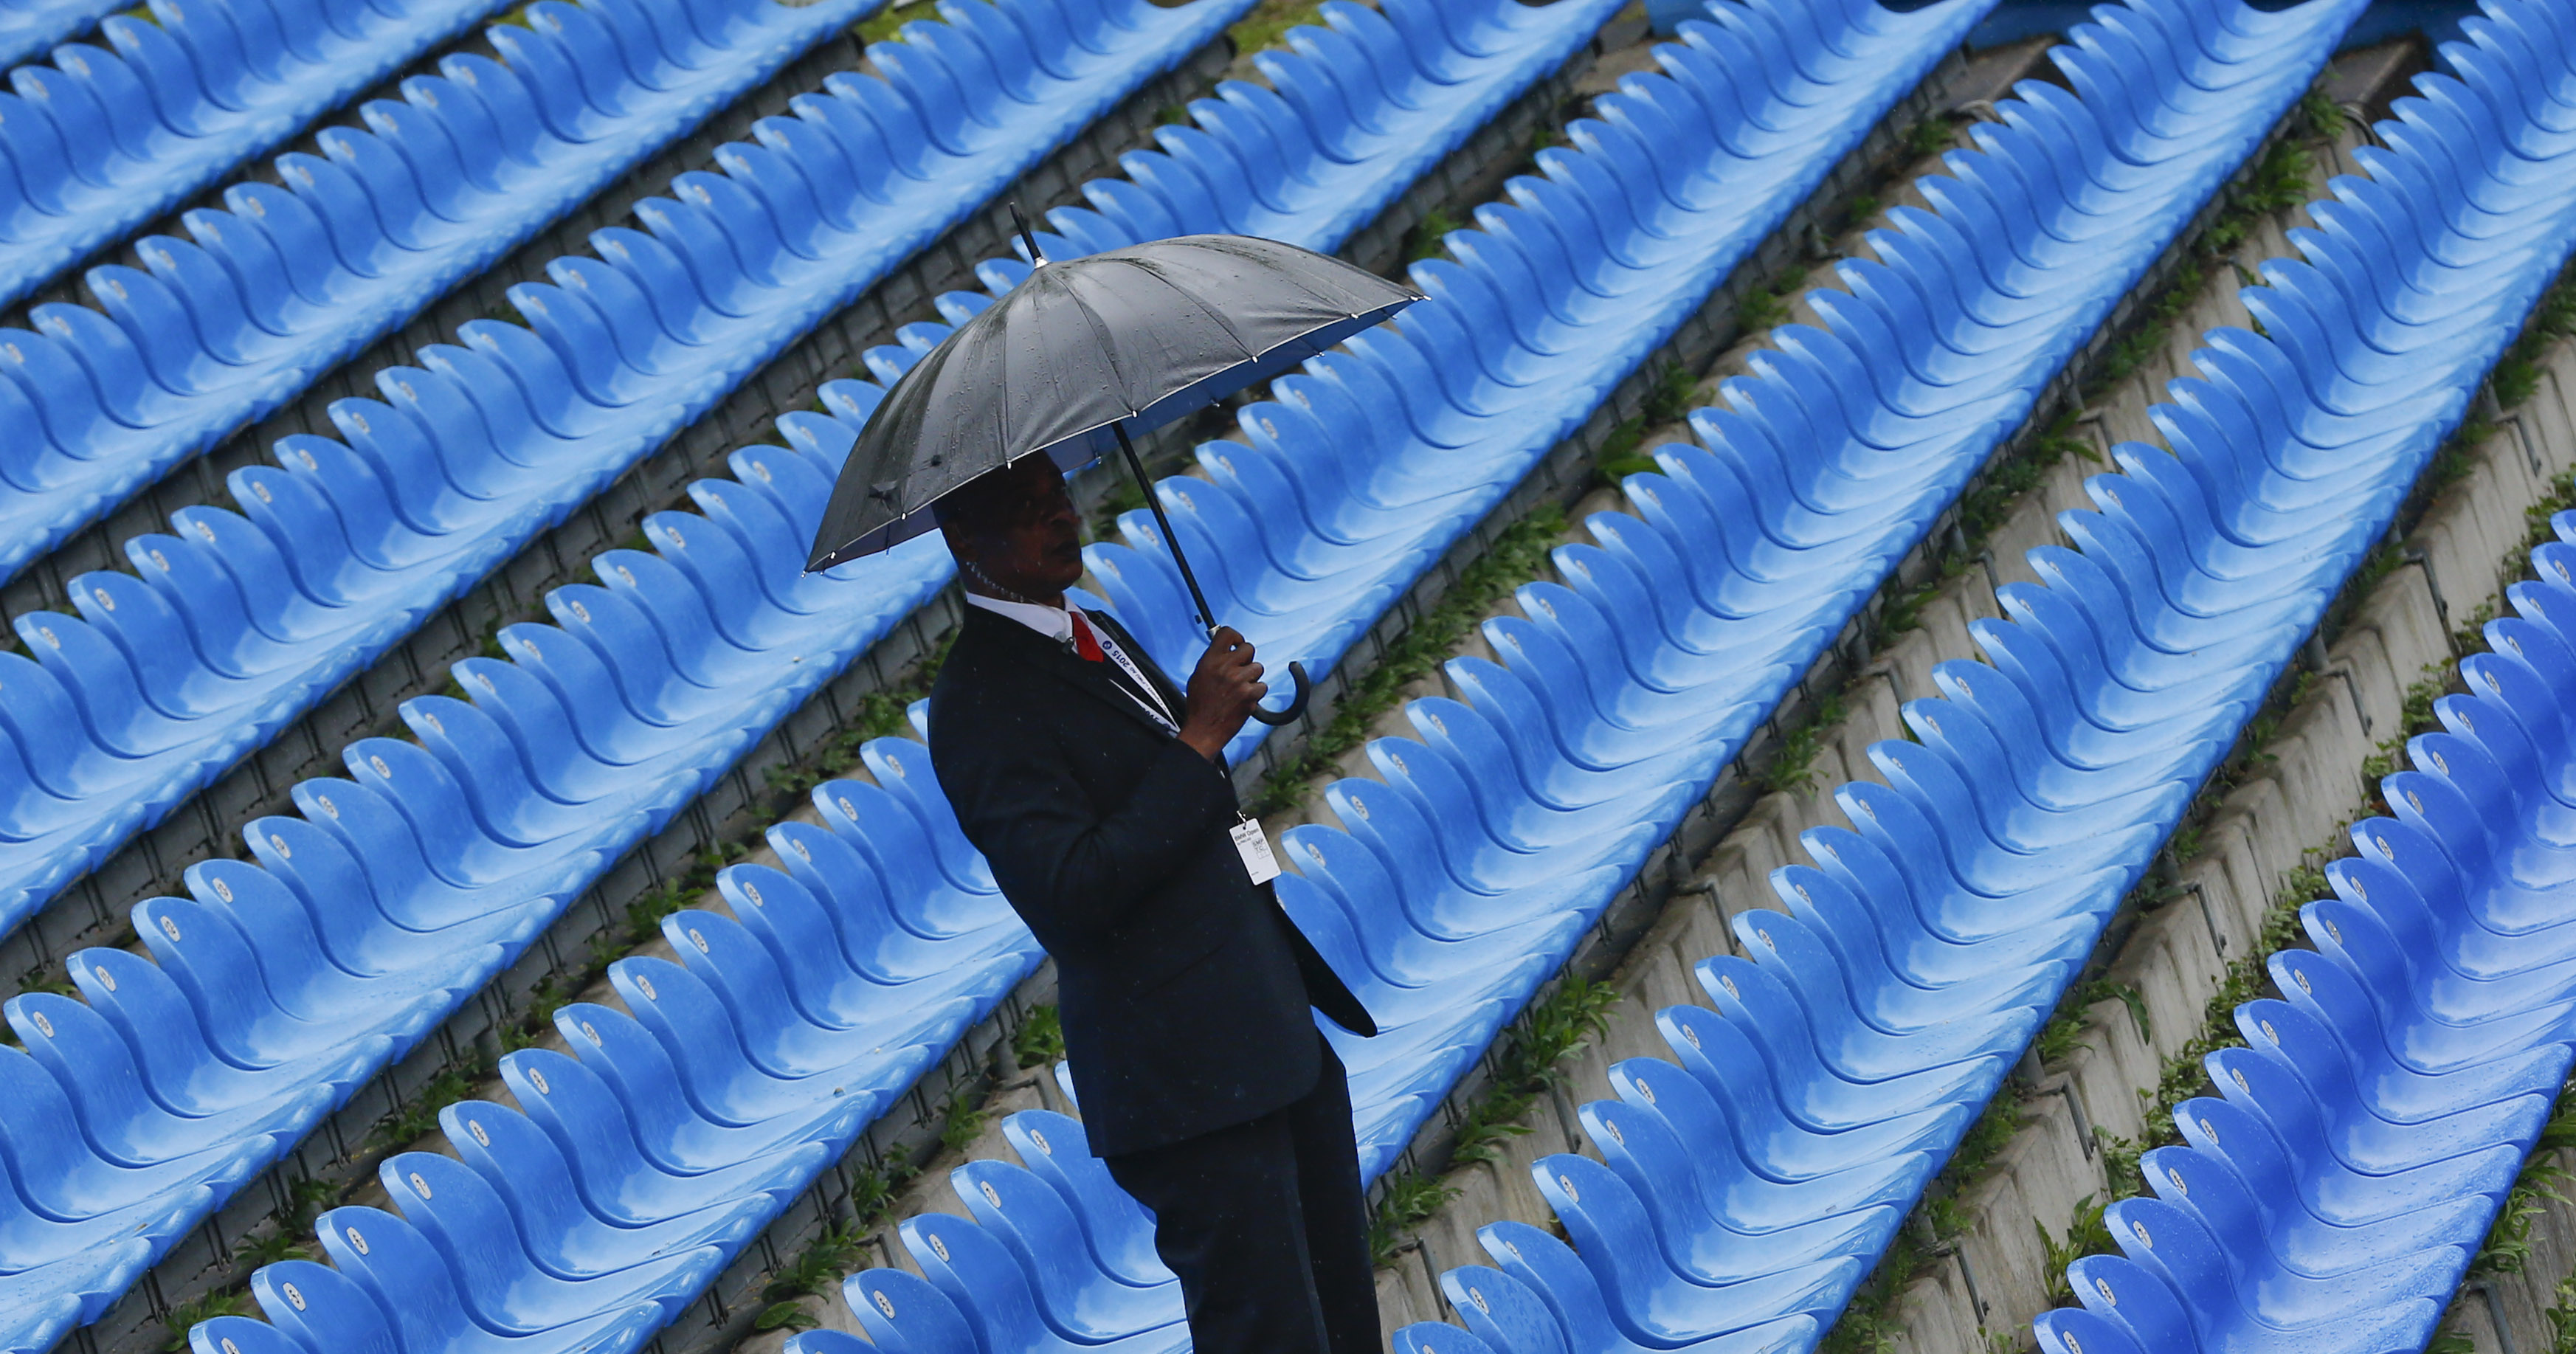 A security employee waits during a rain delay before the first quarterfinal match at the BMW Open tennis tournament in Munich, Germany, on Friday, May 1, 2015. (AP Photo/Matthias Schrader)